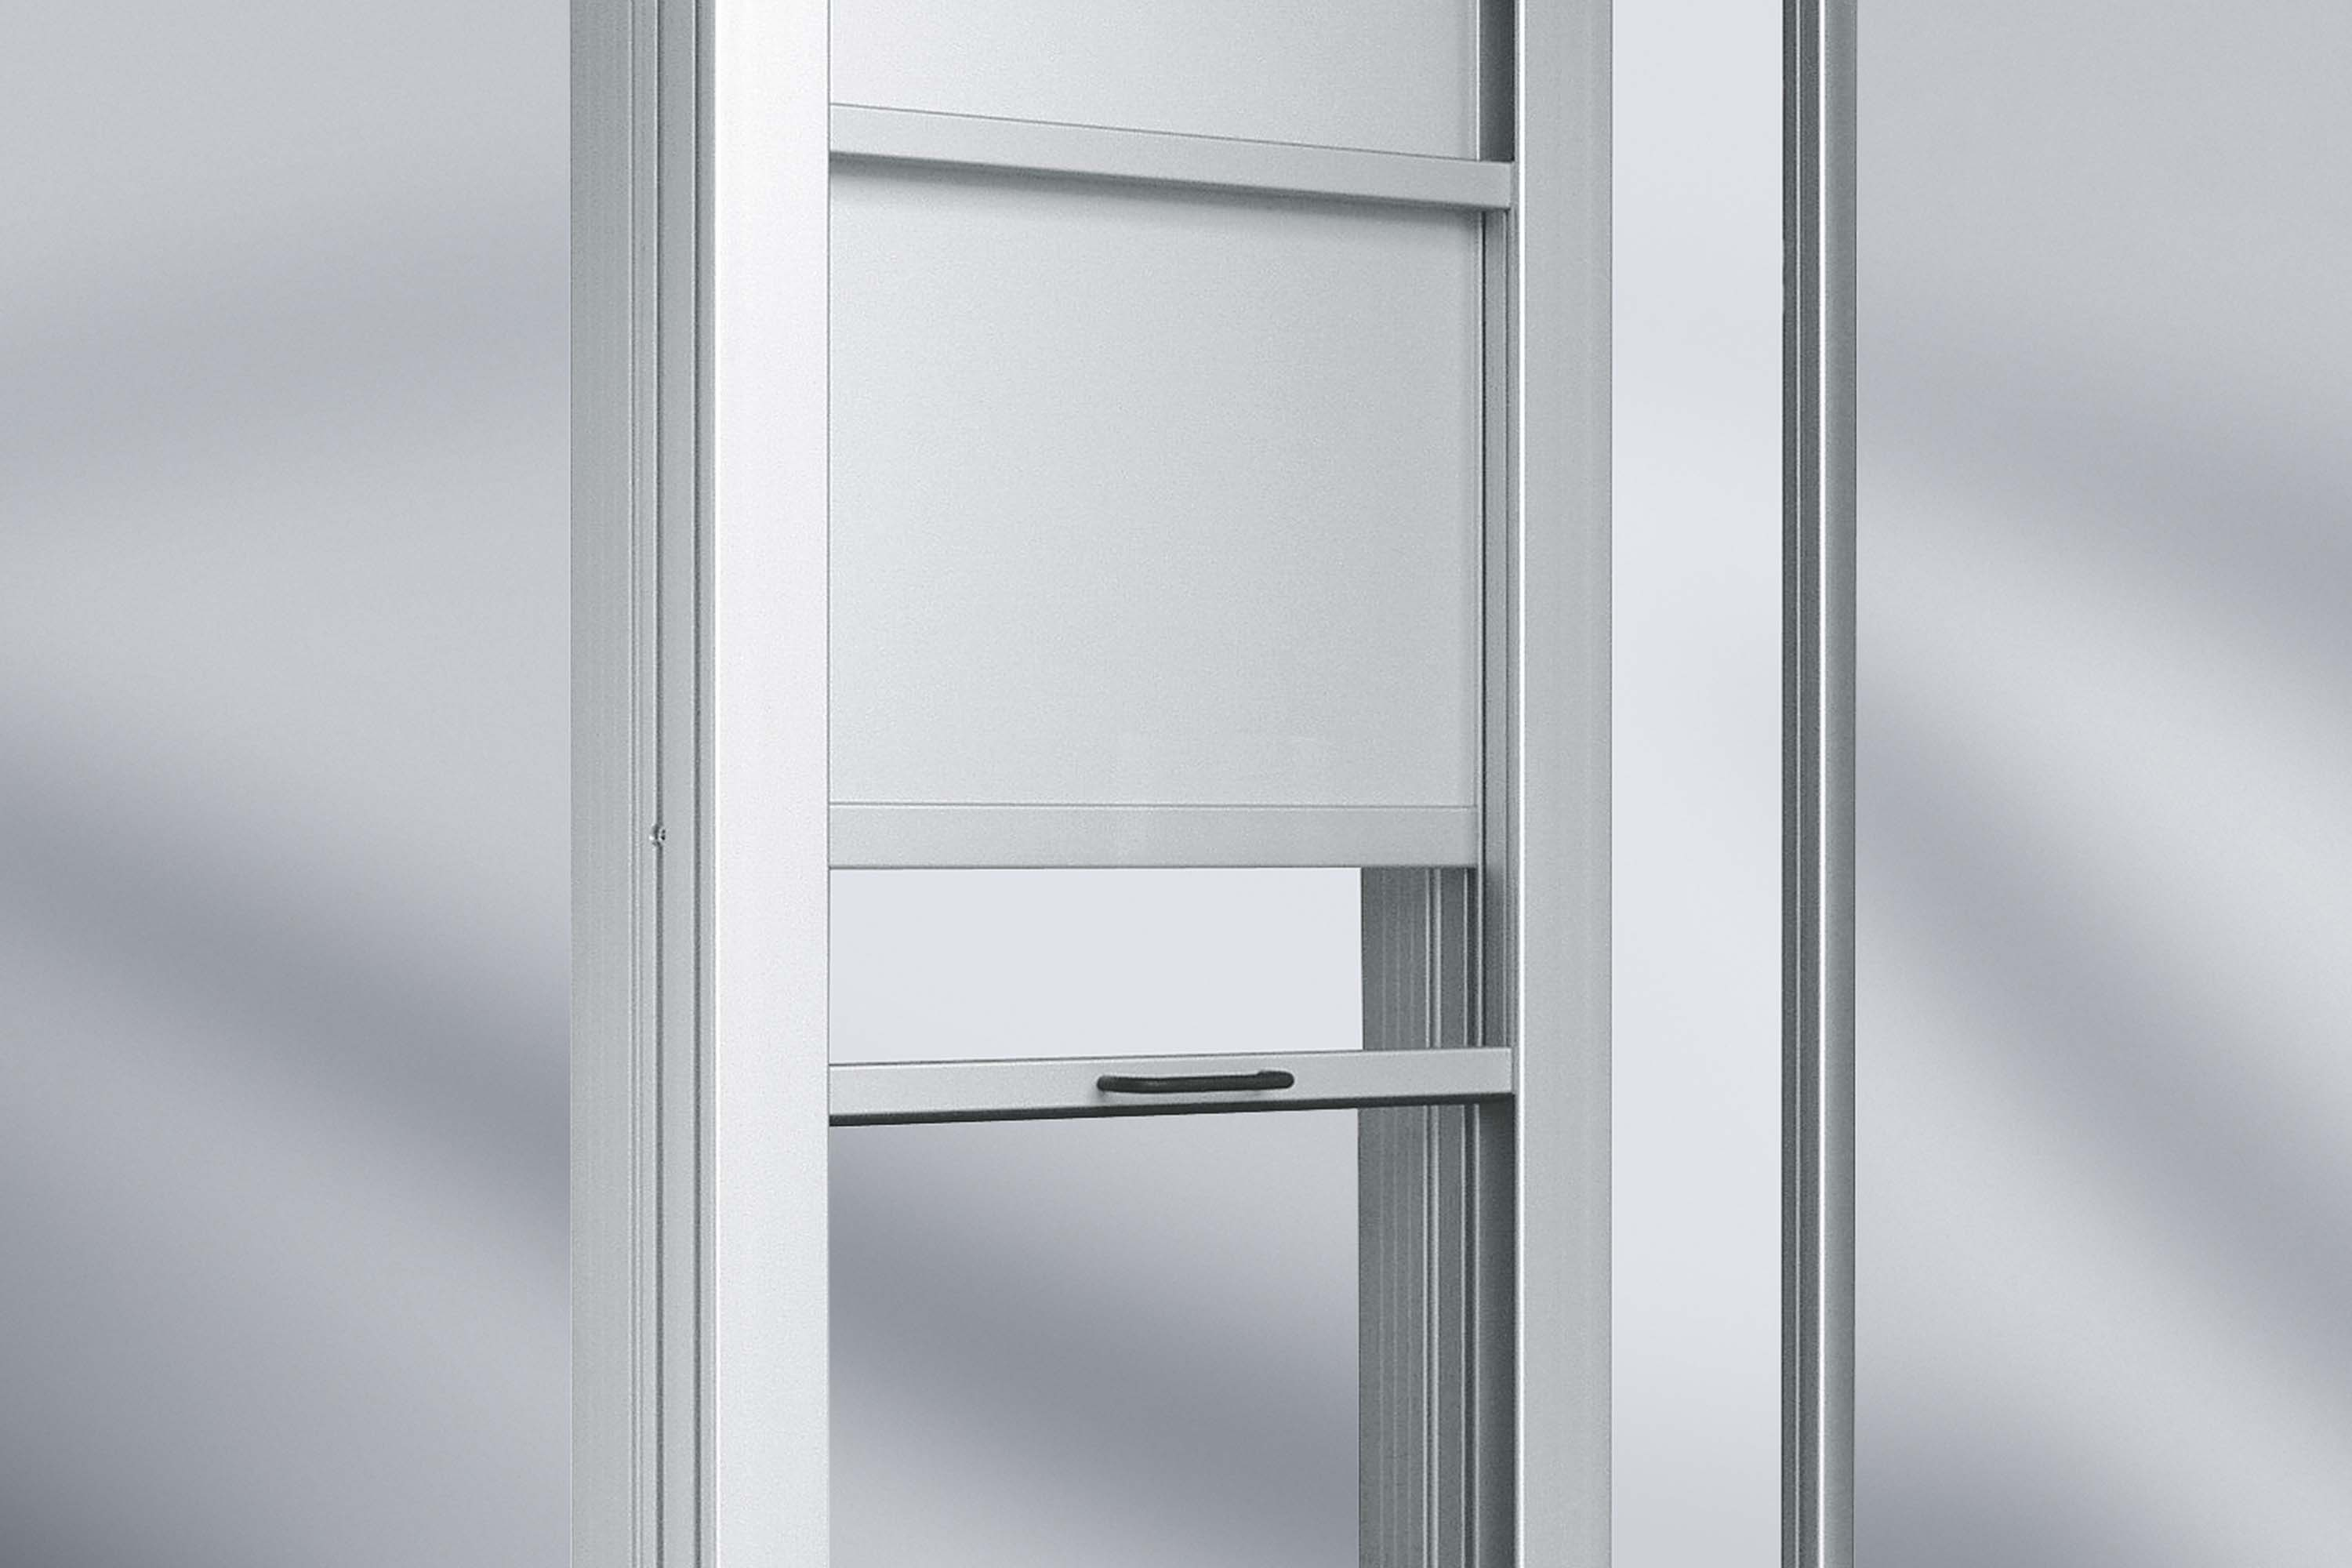 Lifting-Door System